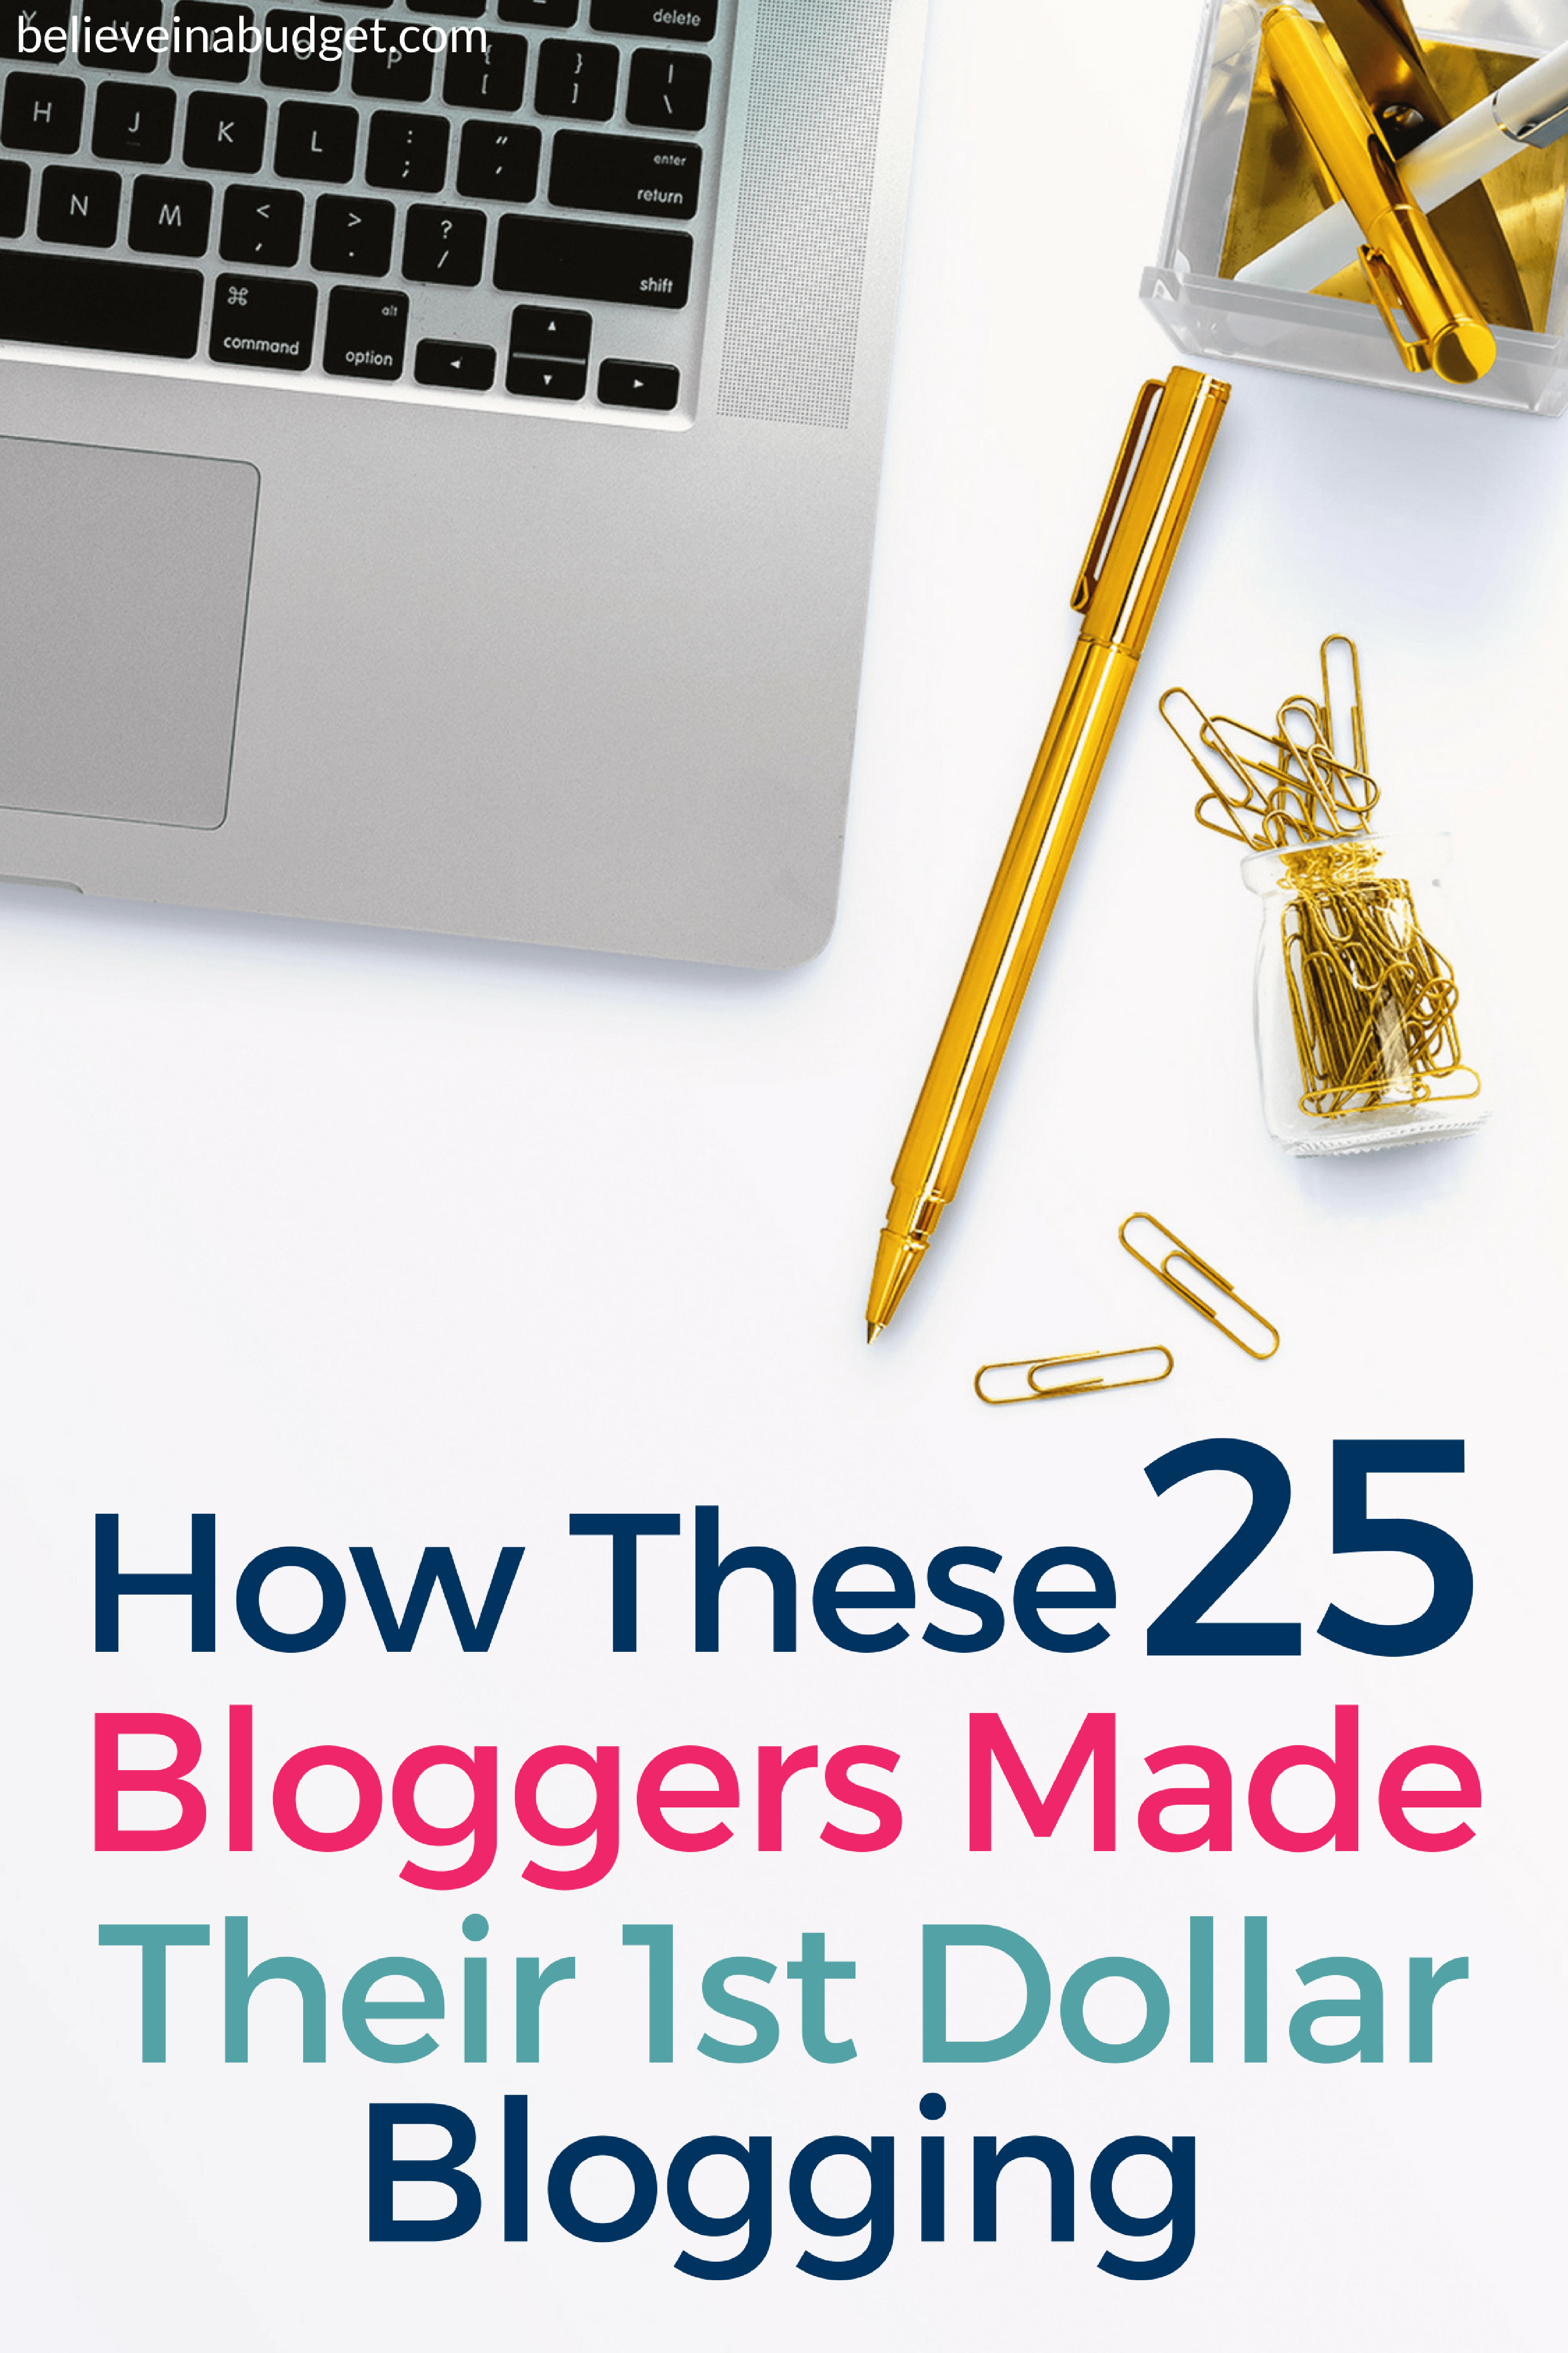 Have you ever thought about starting a blog to make money? Learn how these 25 bloggers made money from blogging. They are sharing their very first income report and how they made their first dollar!